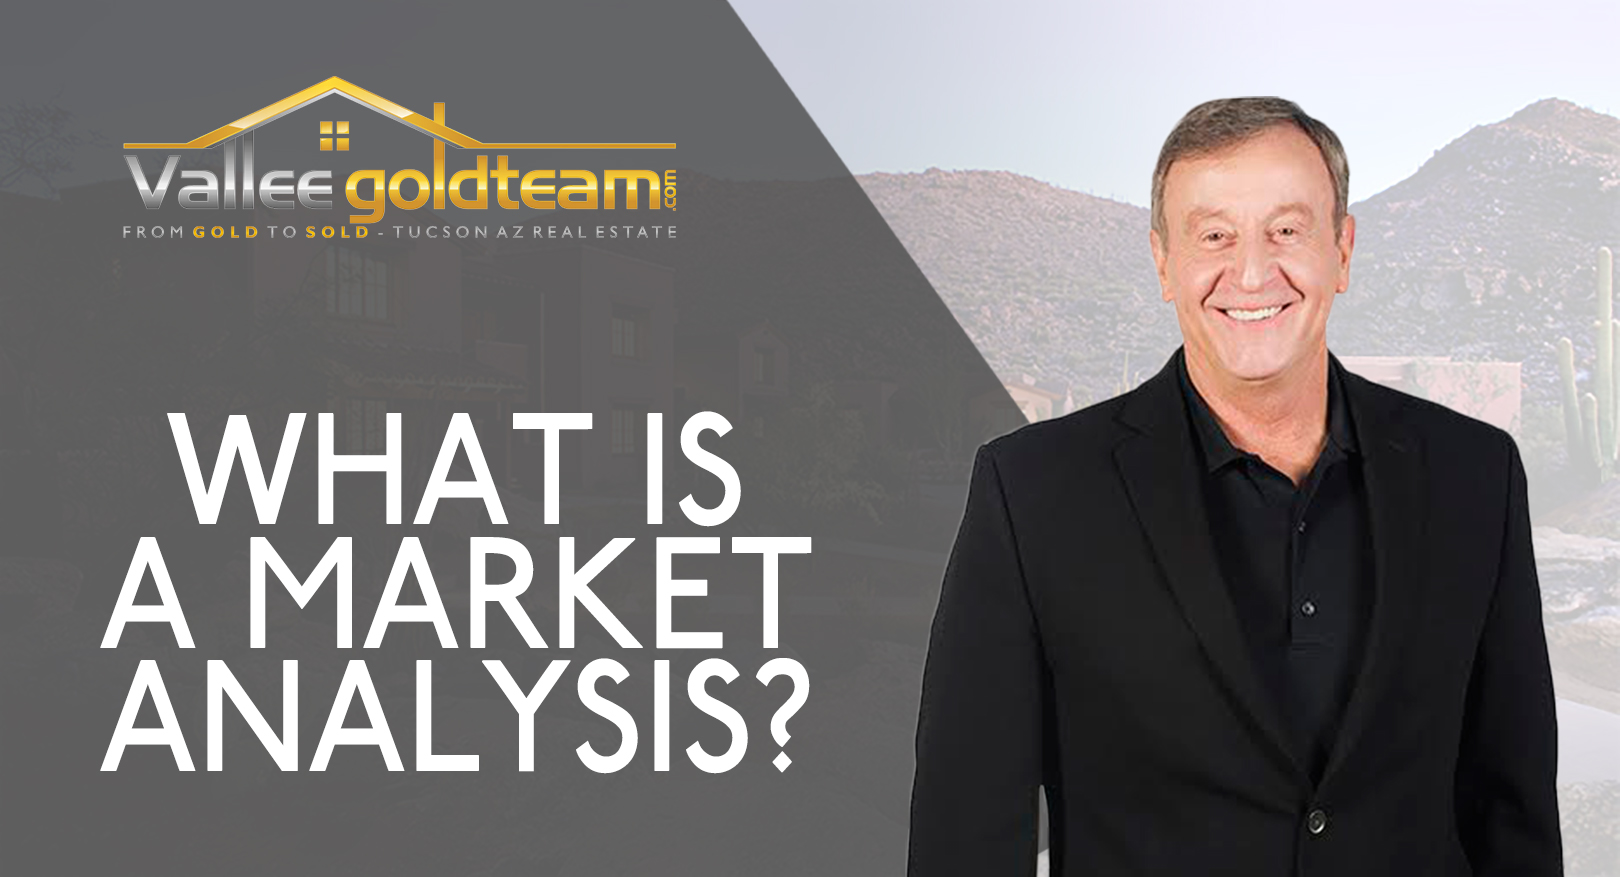 What Is a Market Analysis?